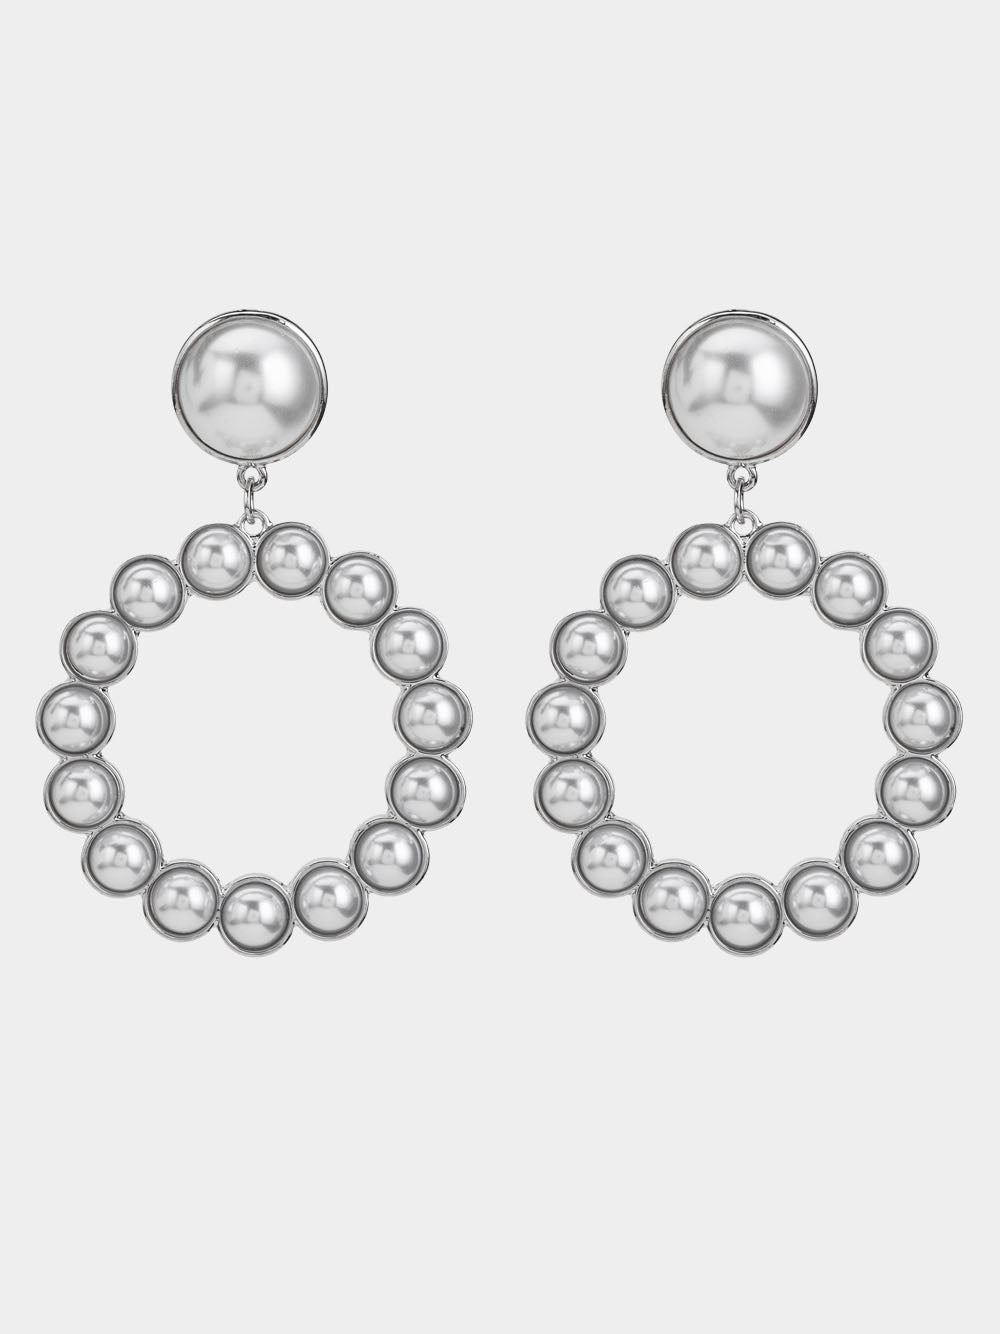 Exaggerated Big Earrings with Pearl Earrings Temperament Earrings Ring Earrings